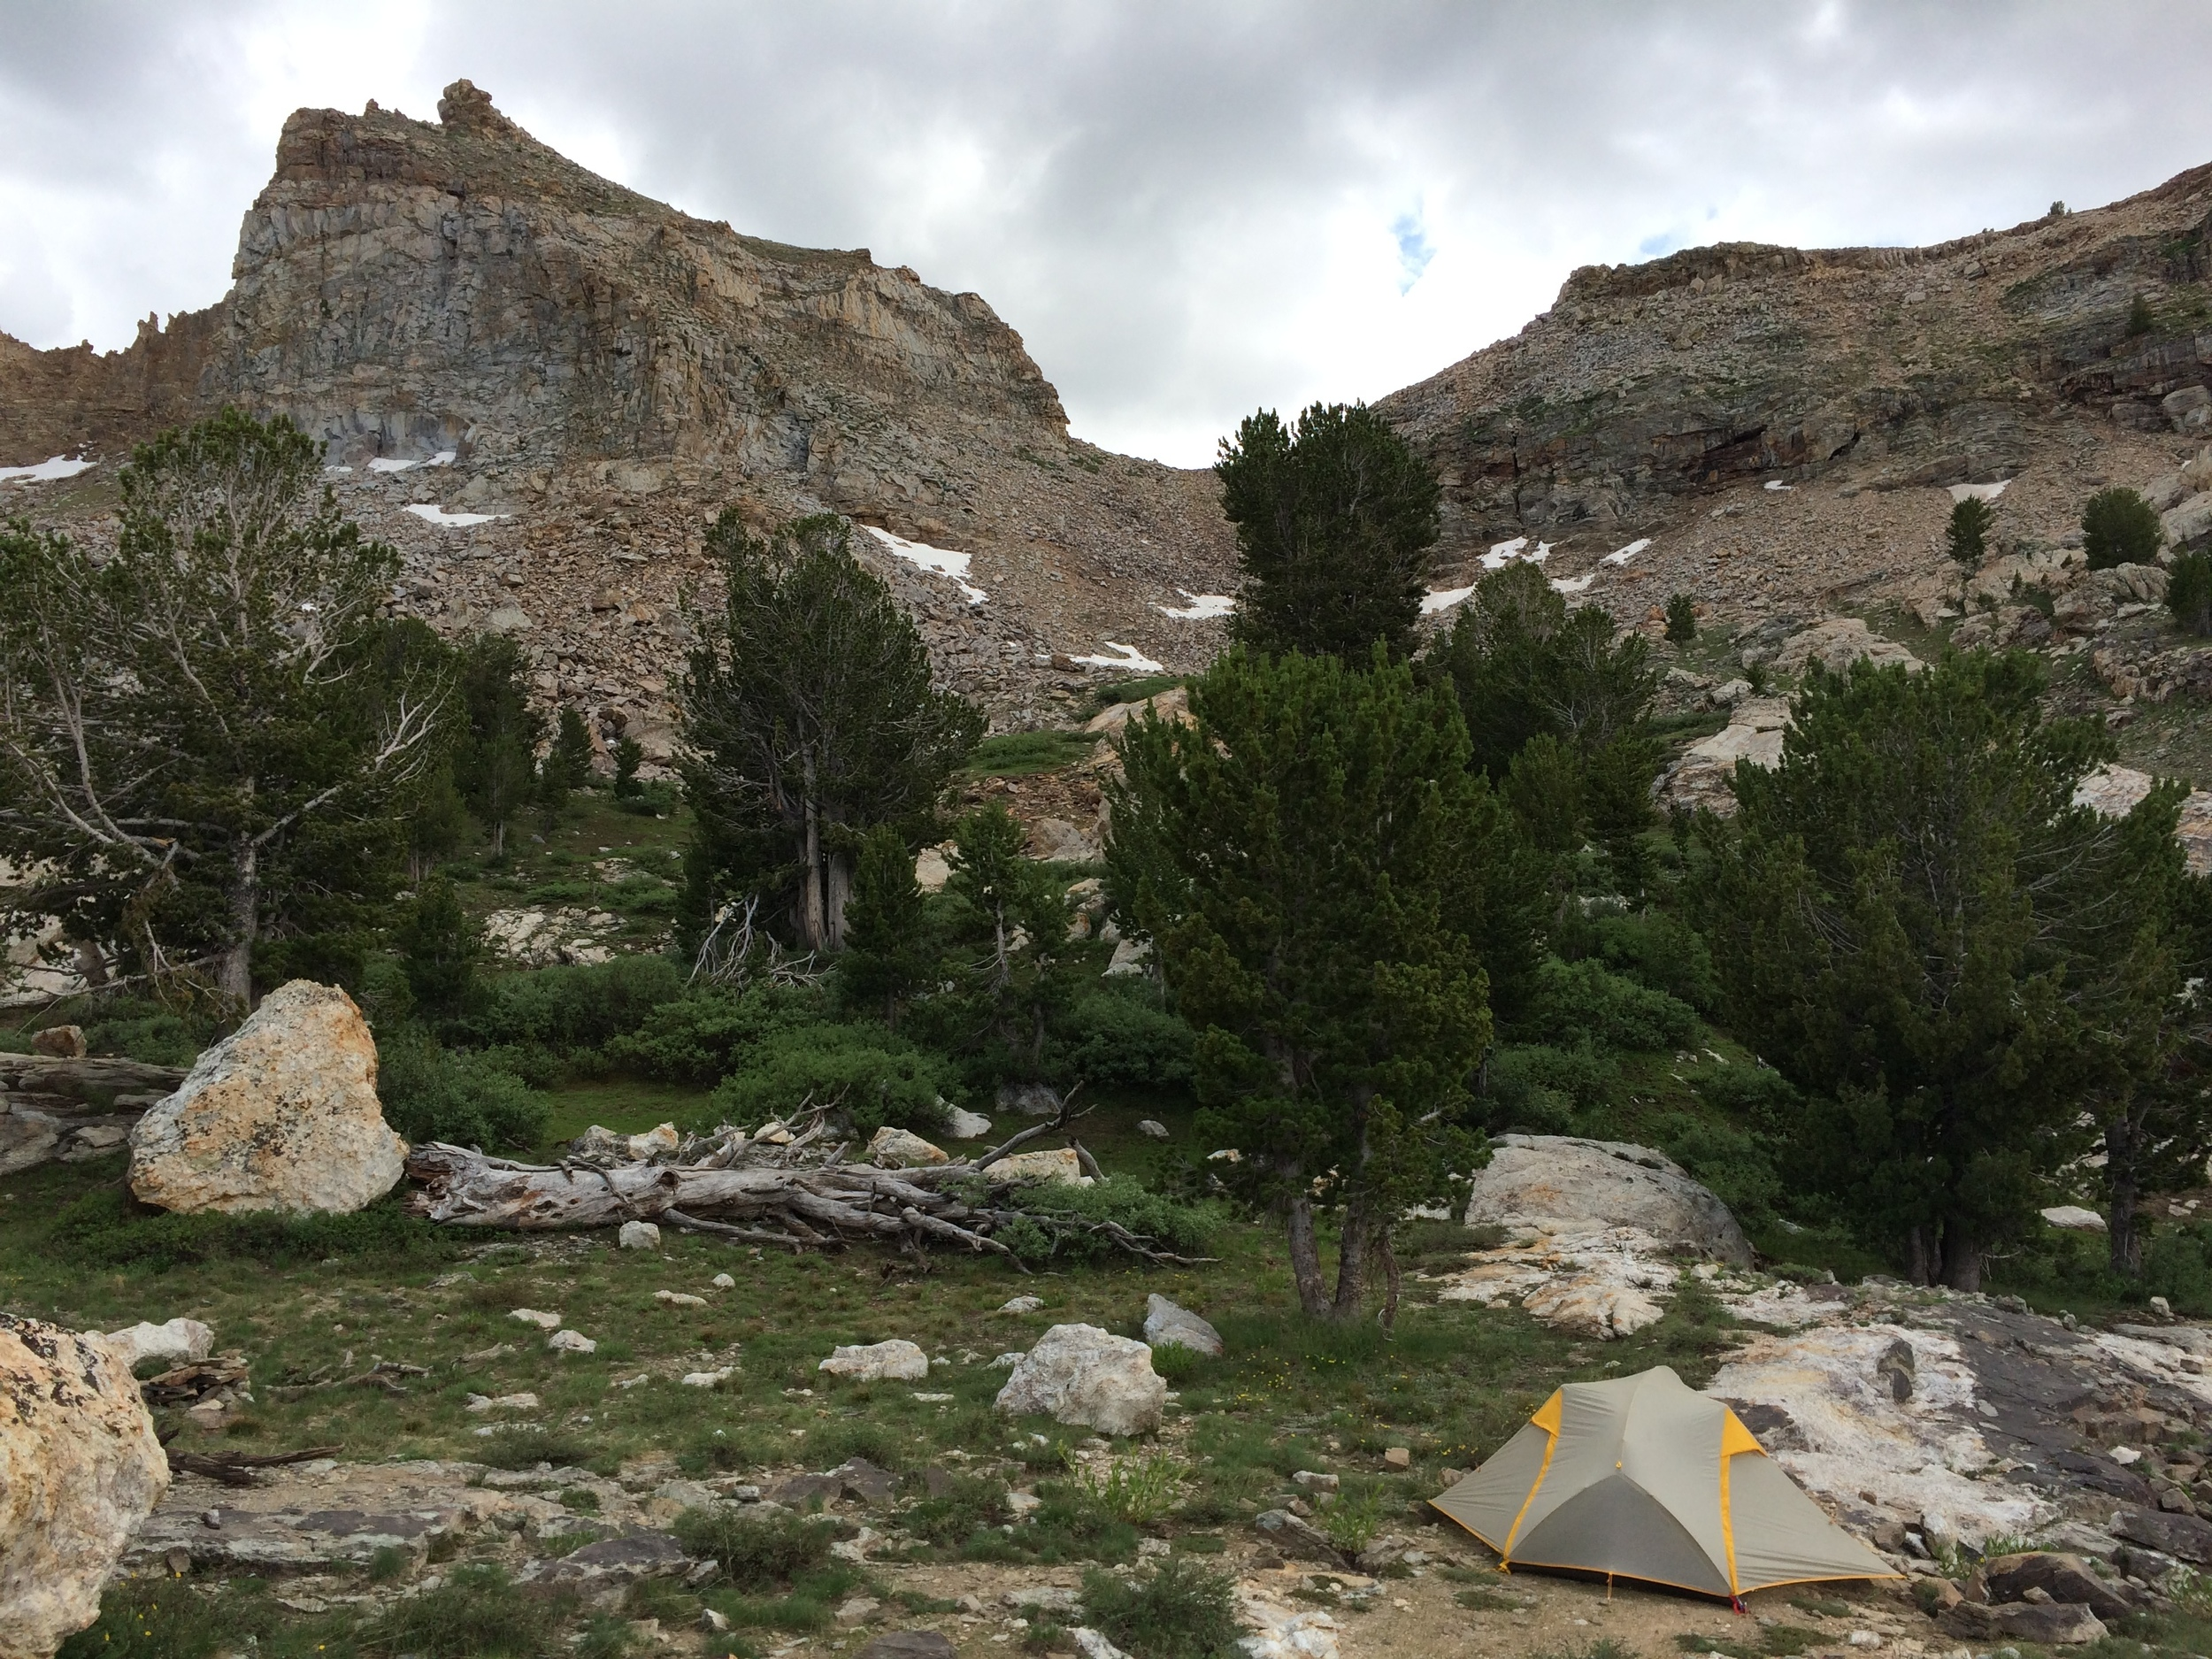 Our campsite in upper Right Fork Canyon below the saddle to Box Canyon